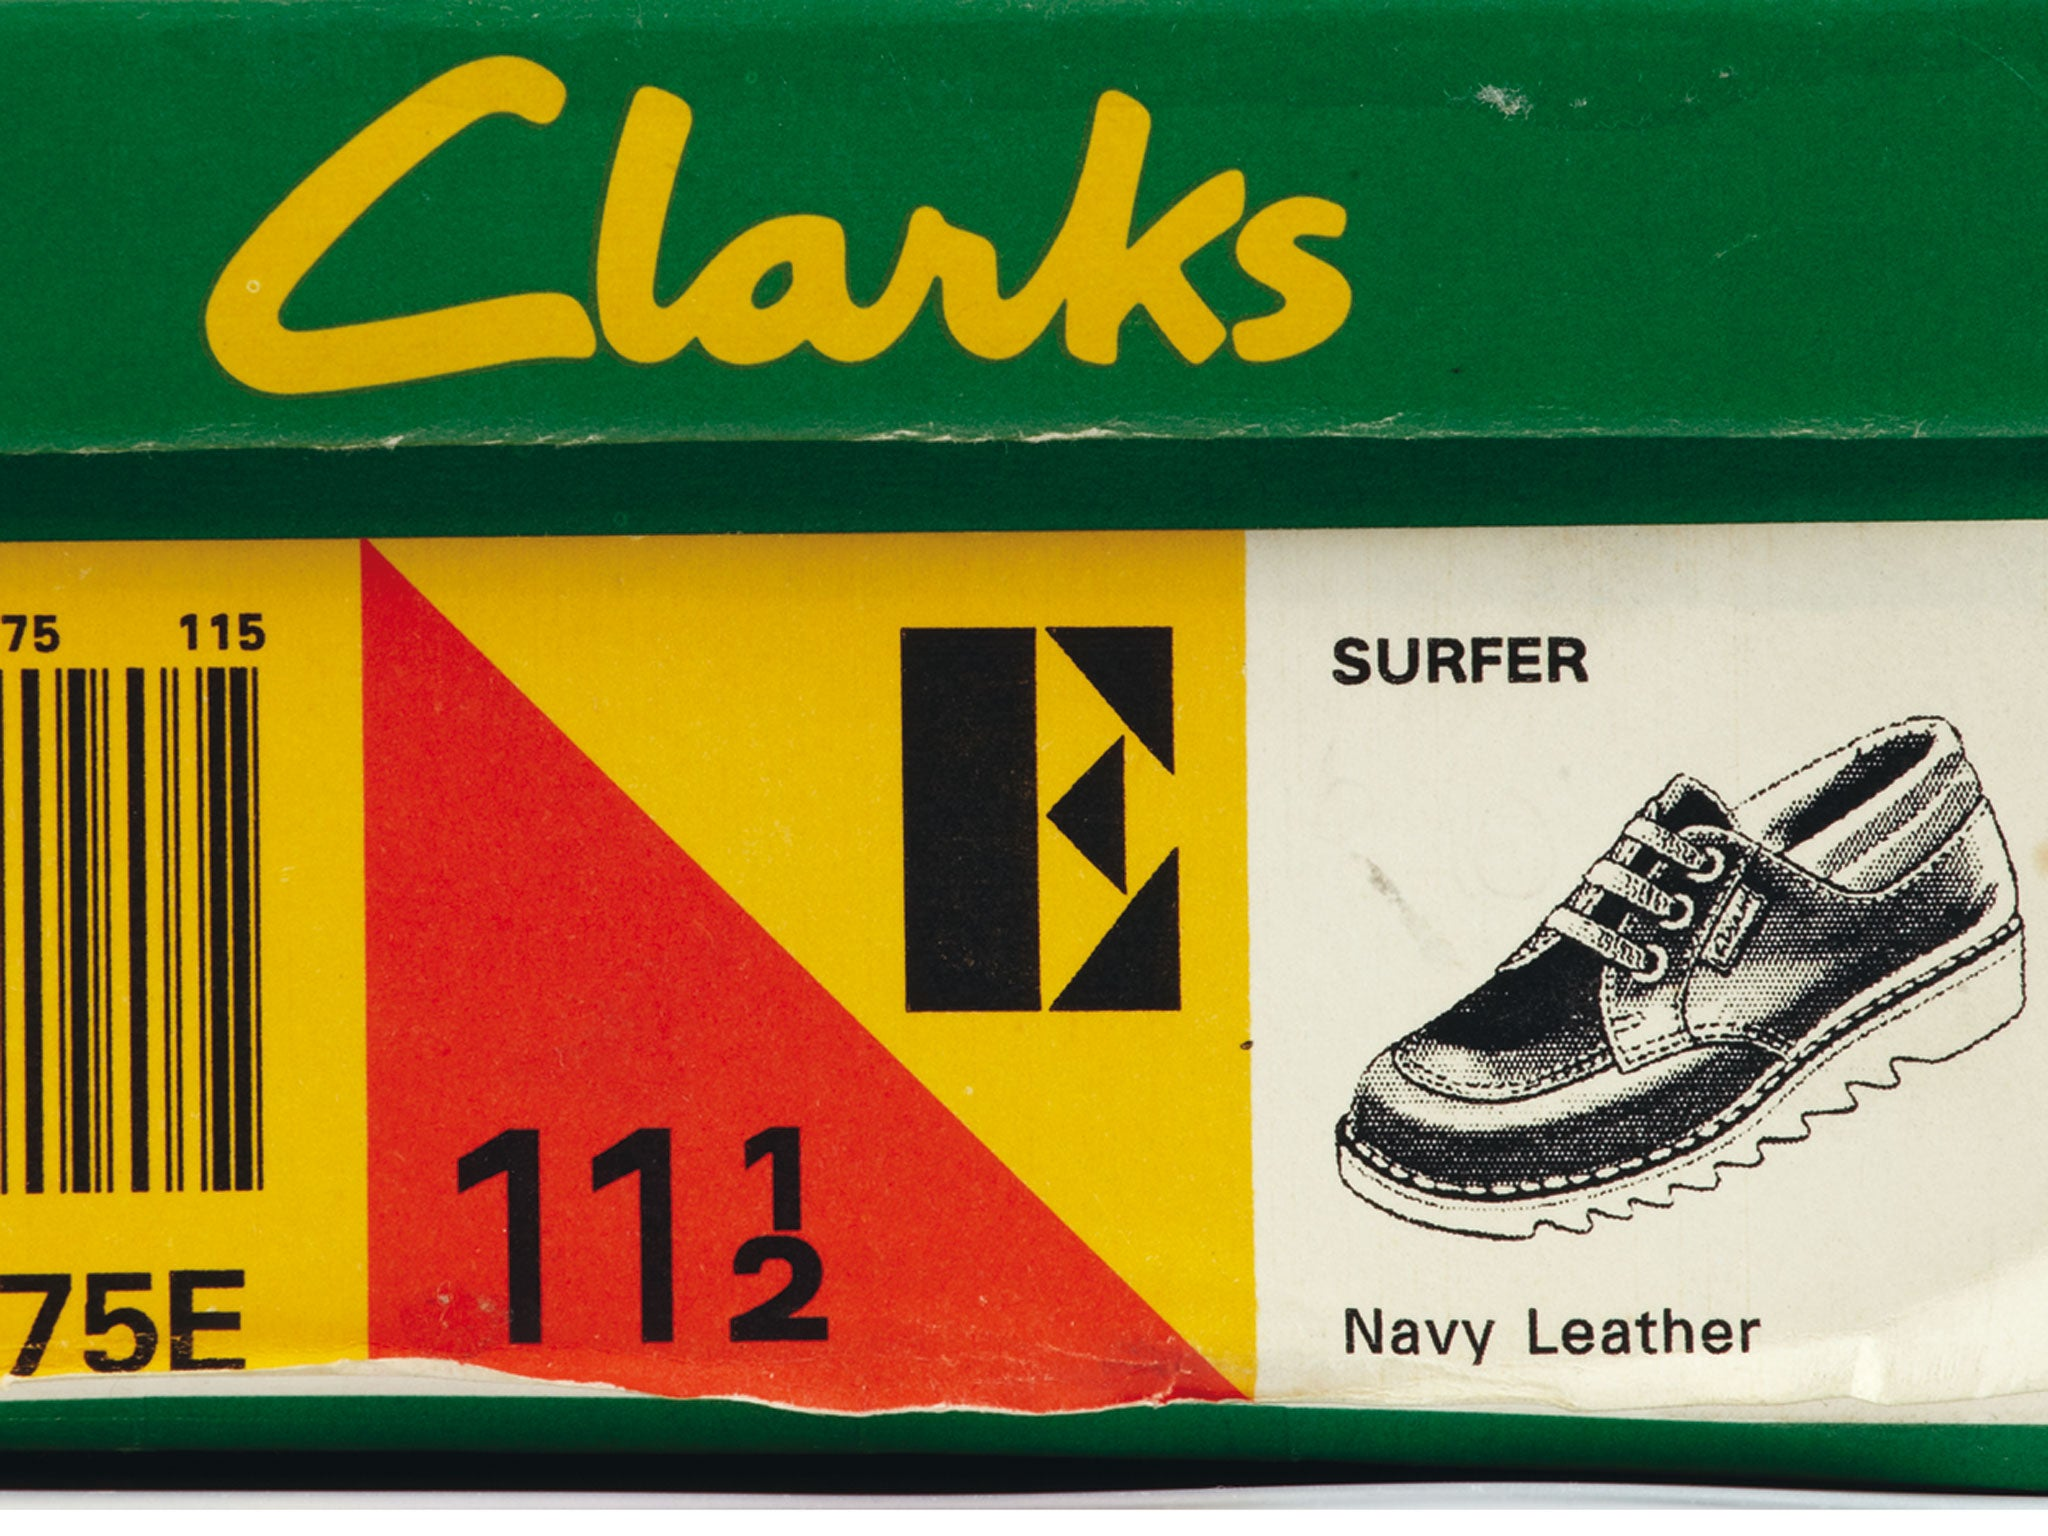 clarkes shoes returns policy